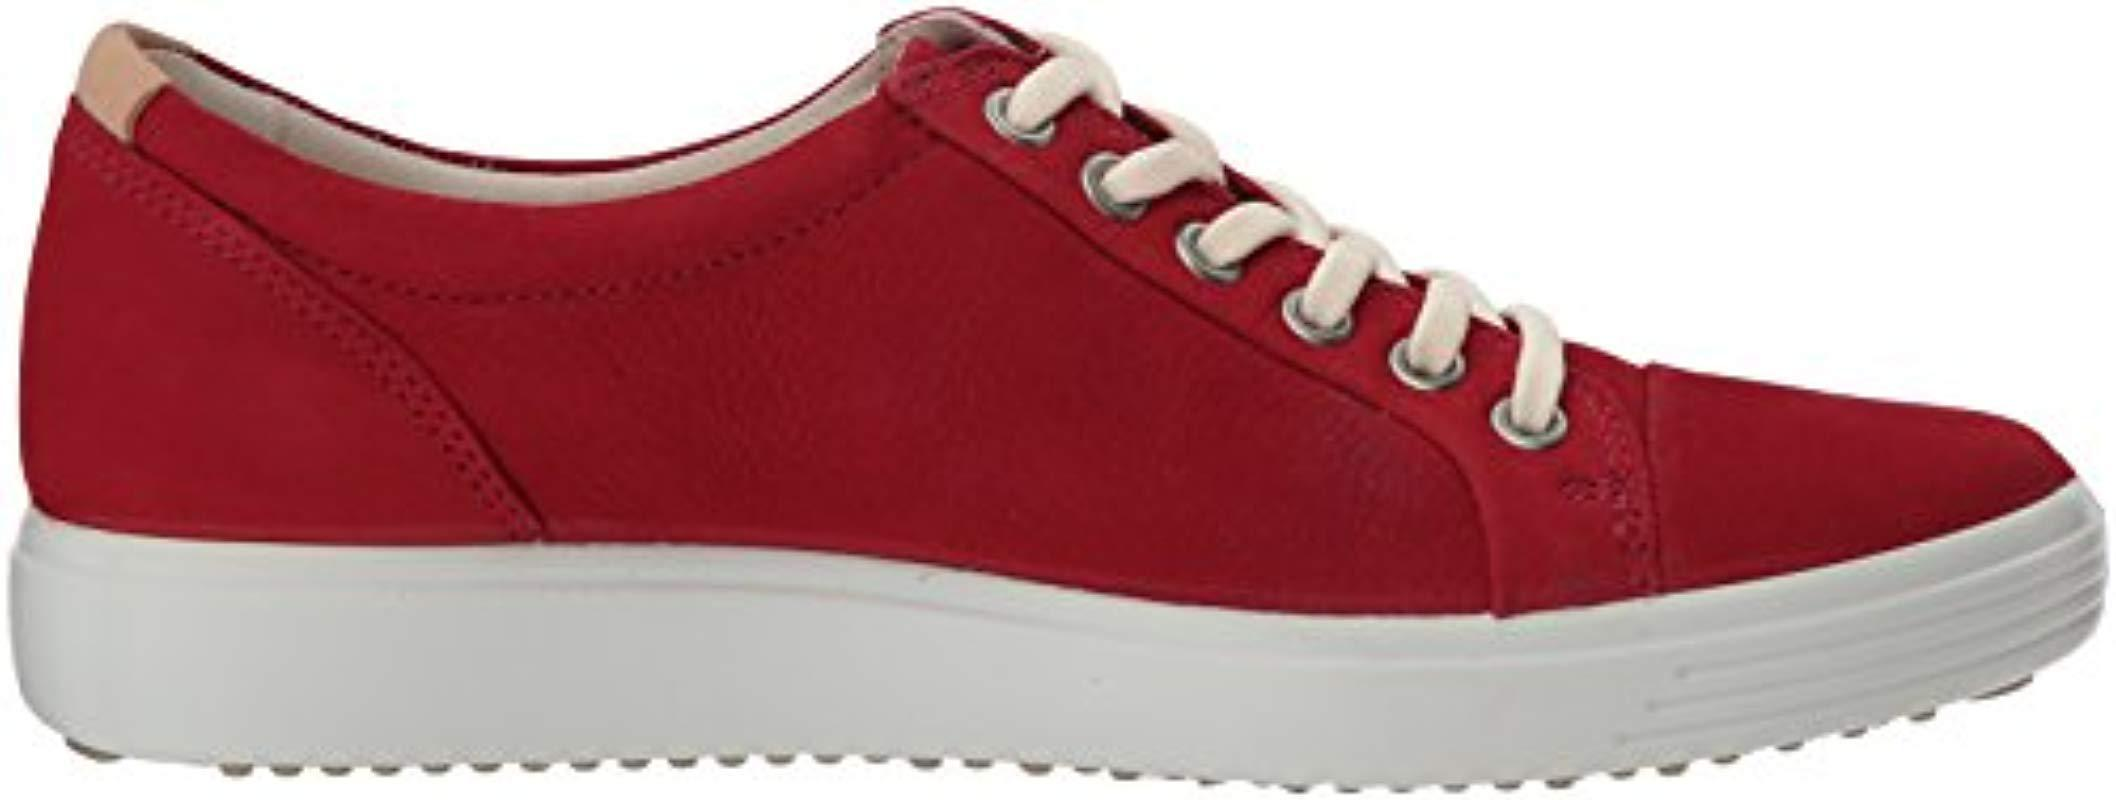 Ecco Leather Soft 7 Sneaker Fashion in Red